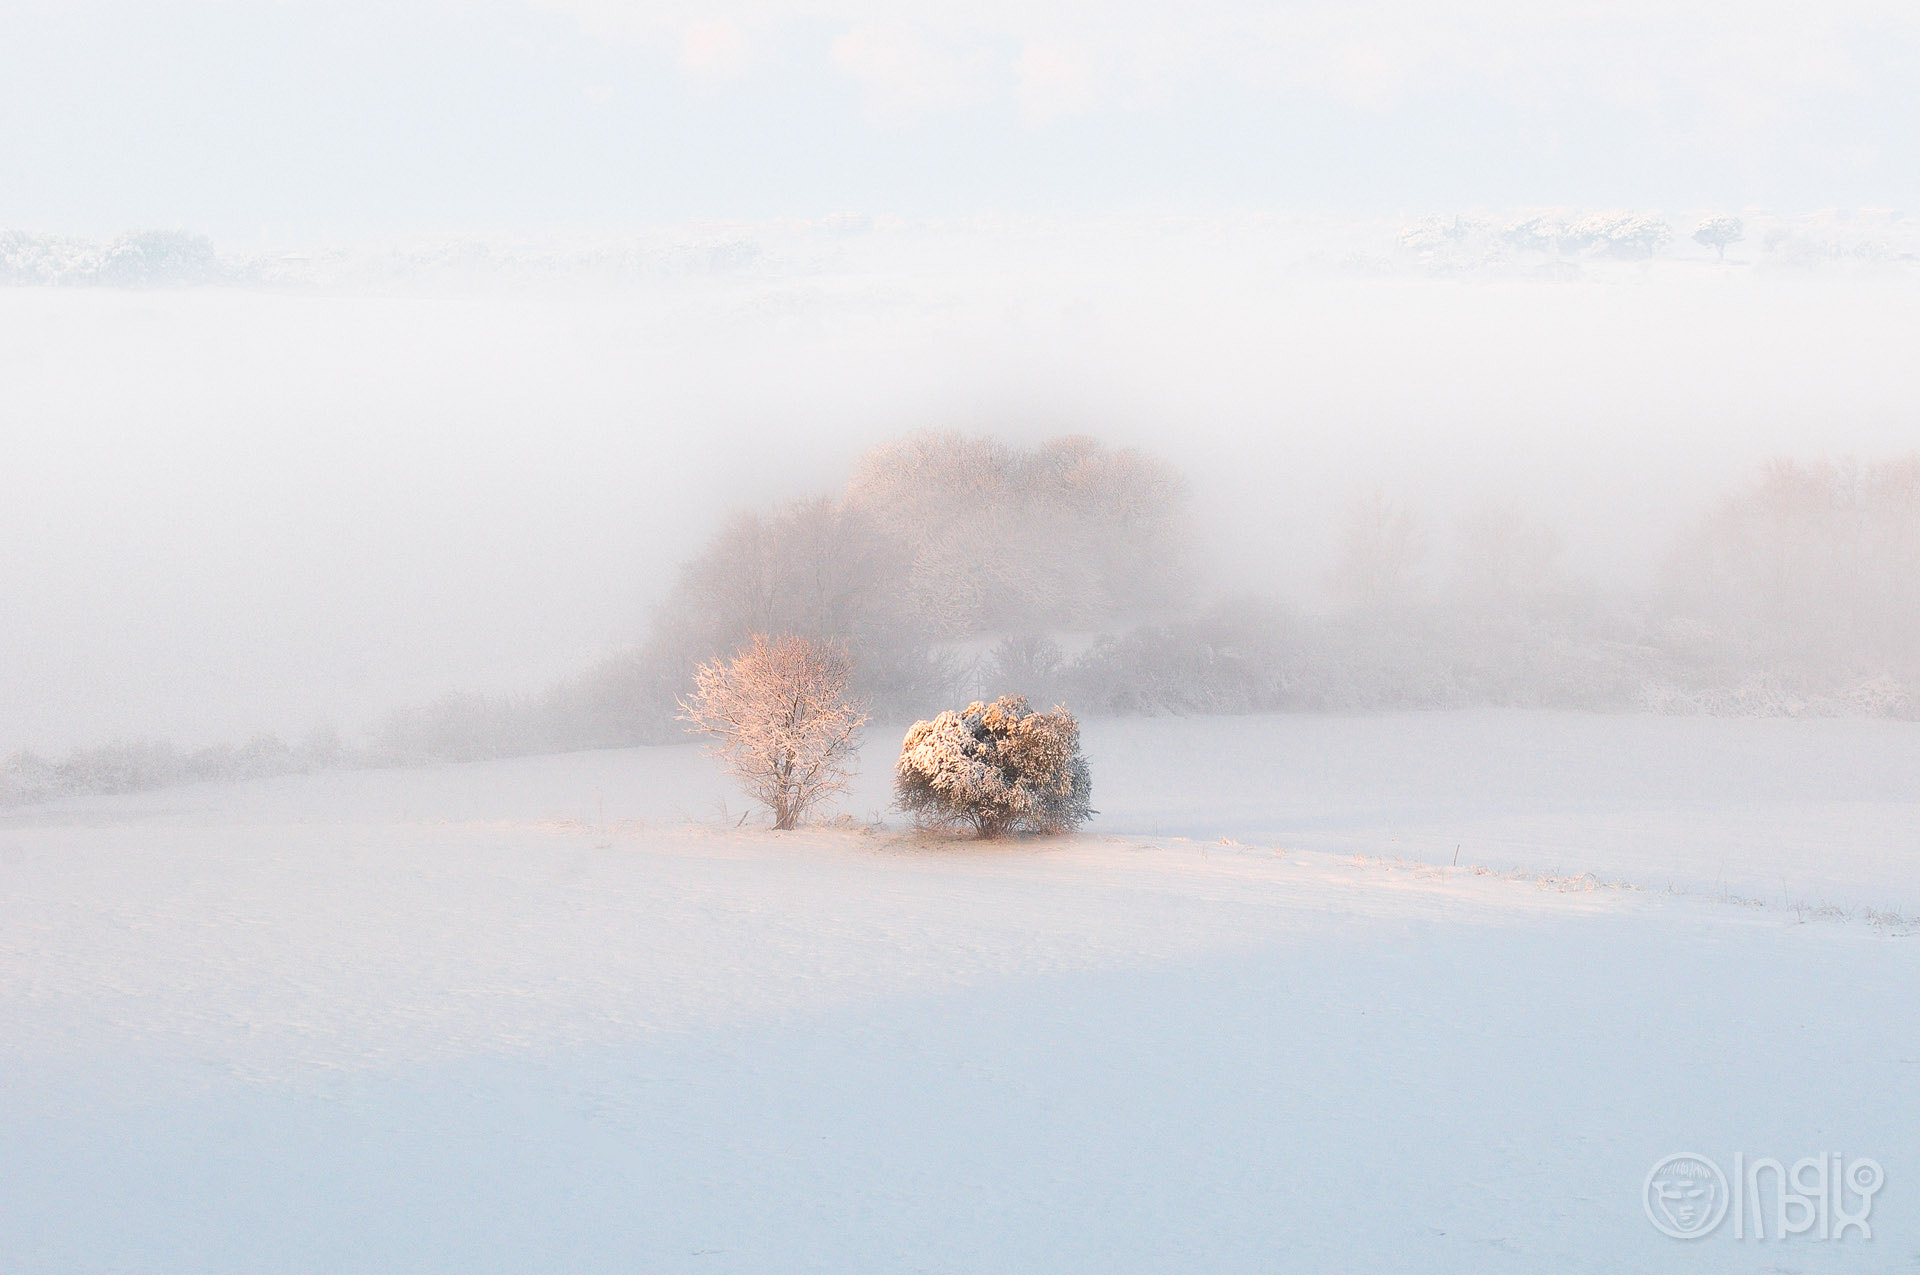 Photograph Winter morning by indiopix  on 500px